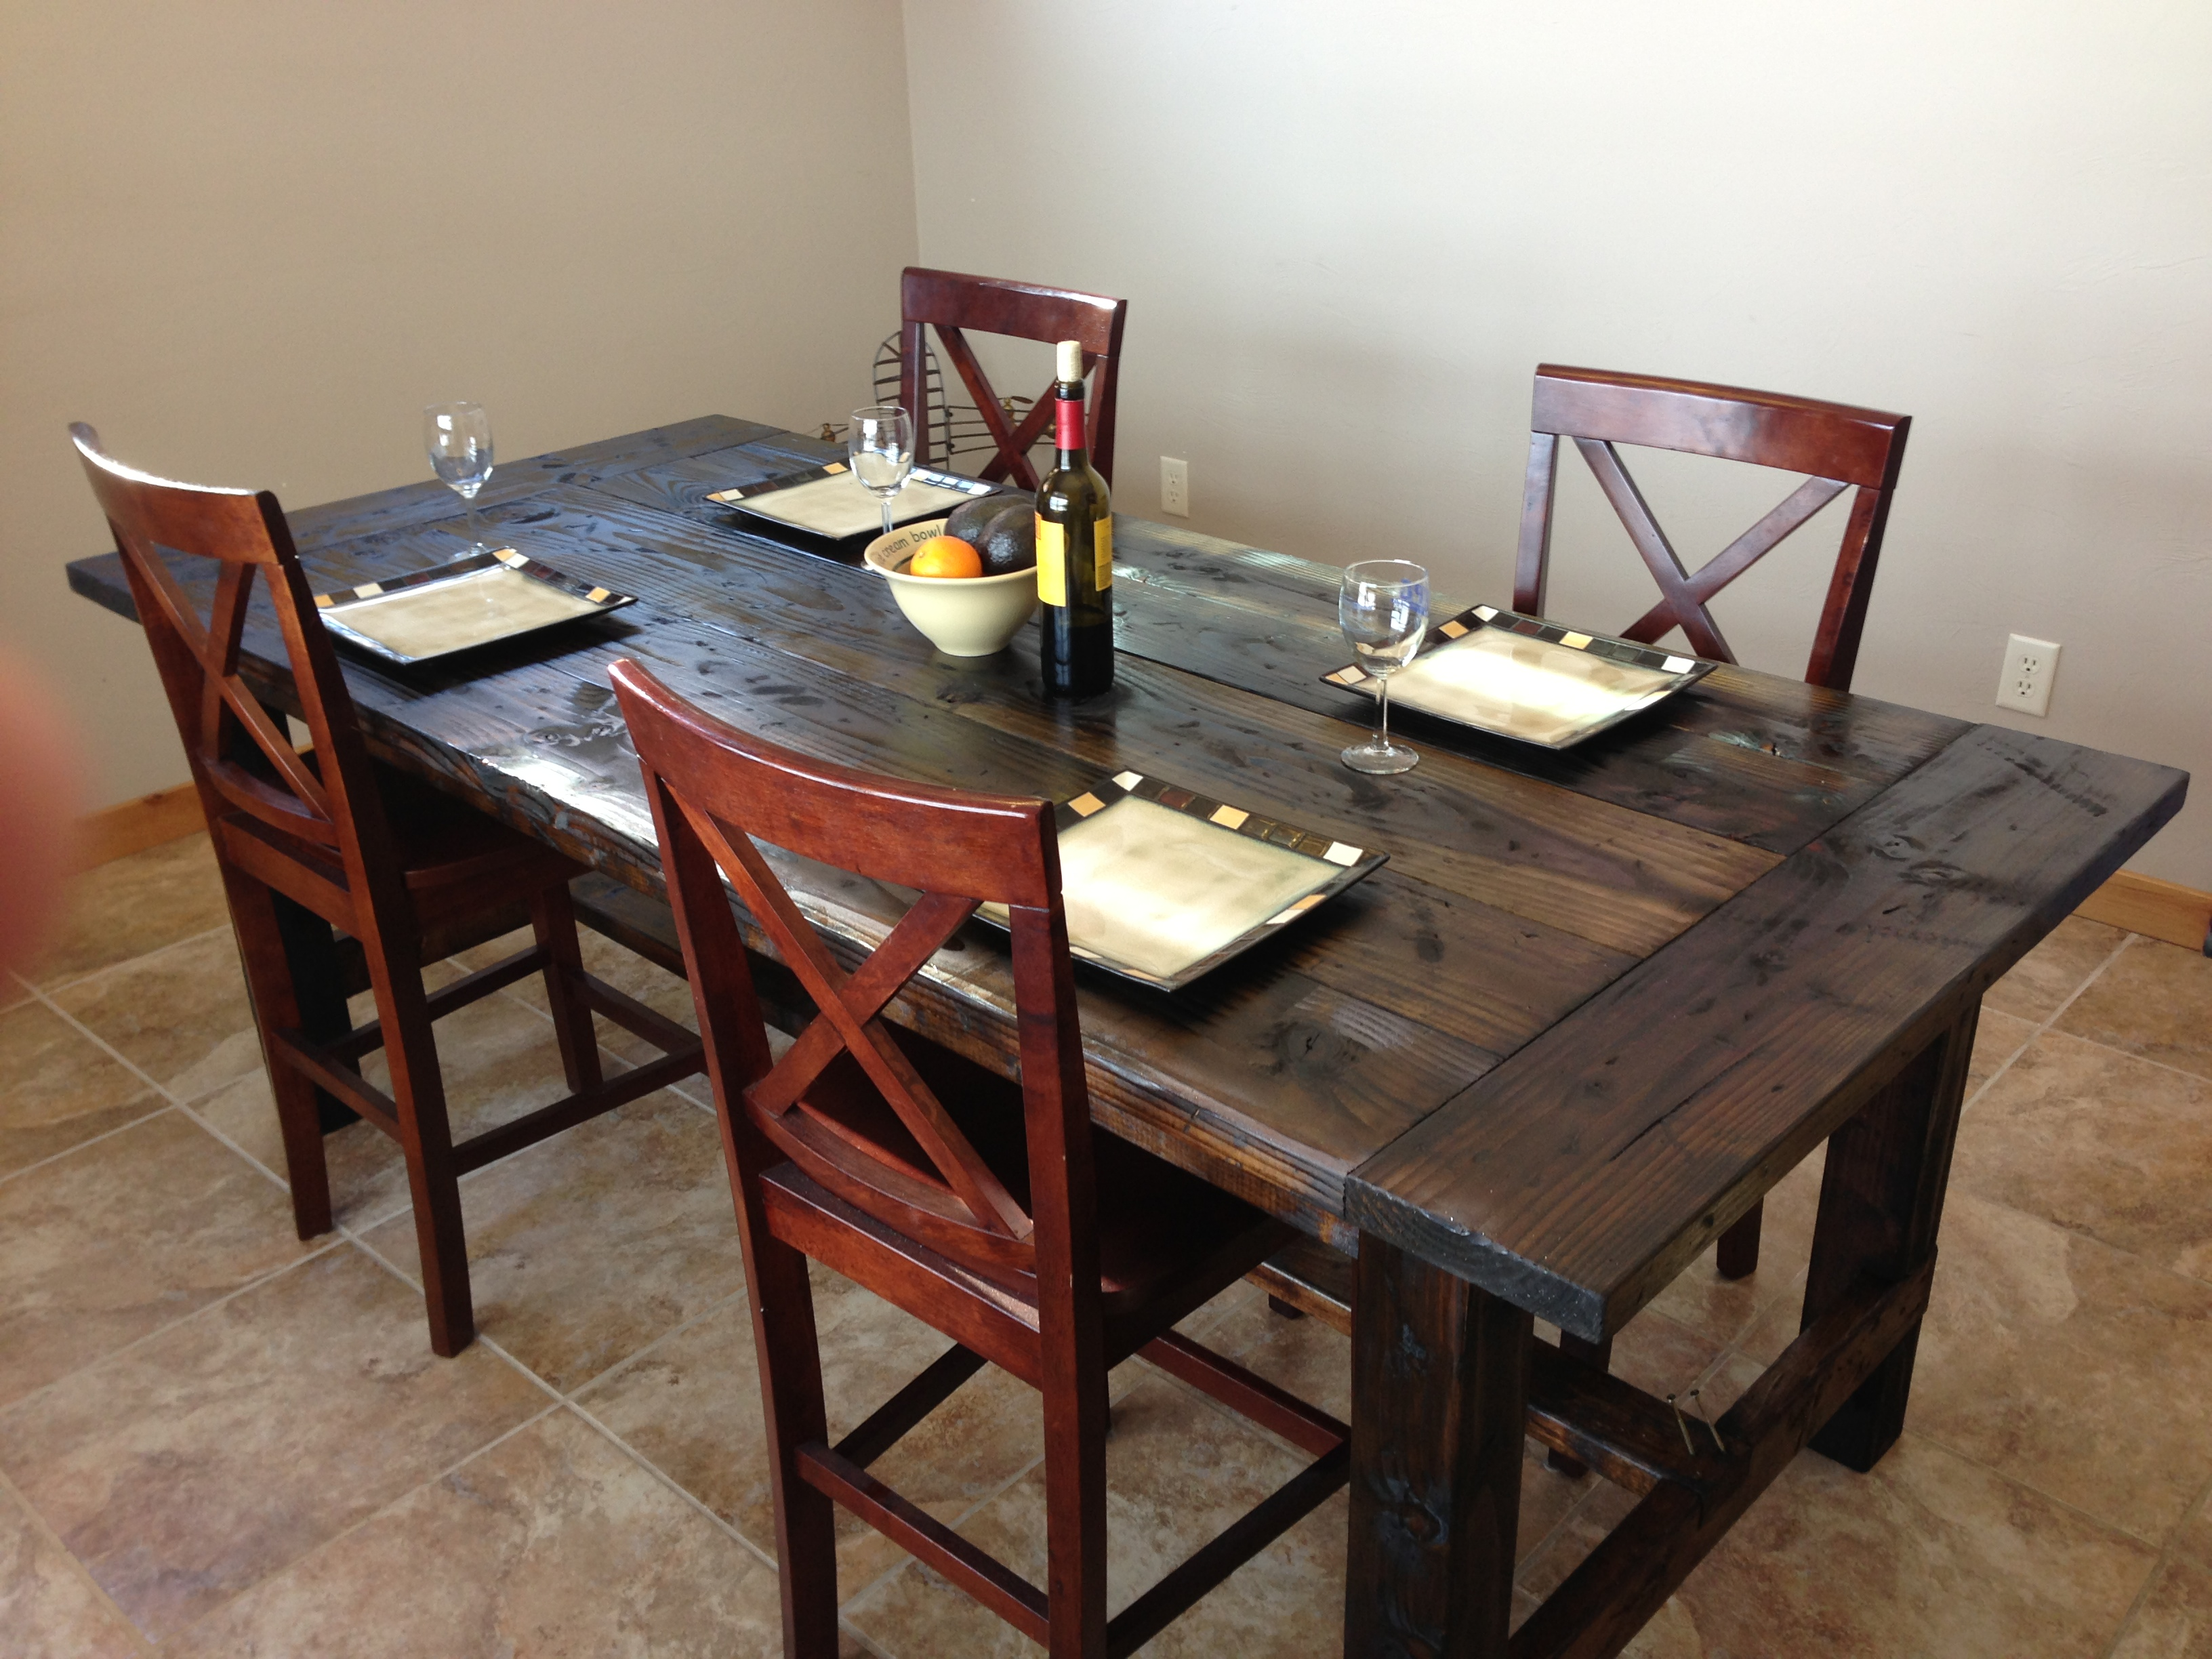 Ana white farm style dining table diy projects for Ana white x dining room table